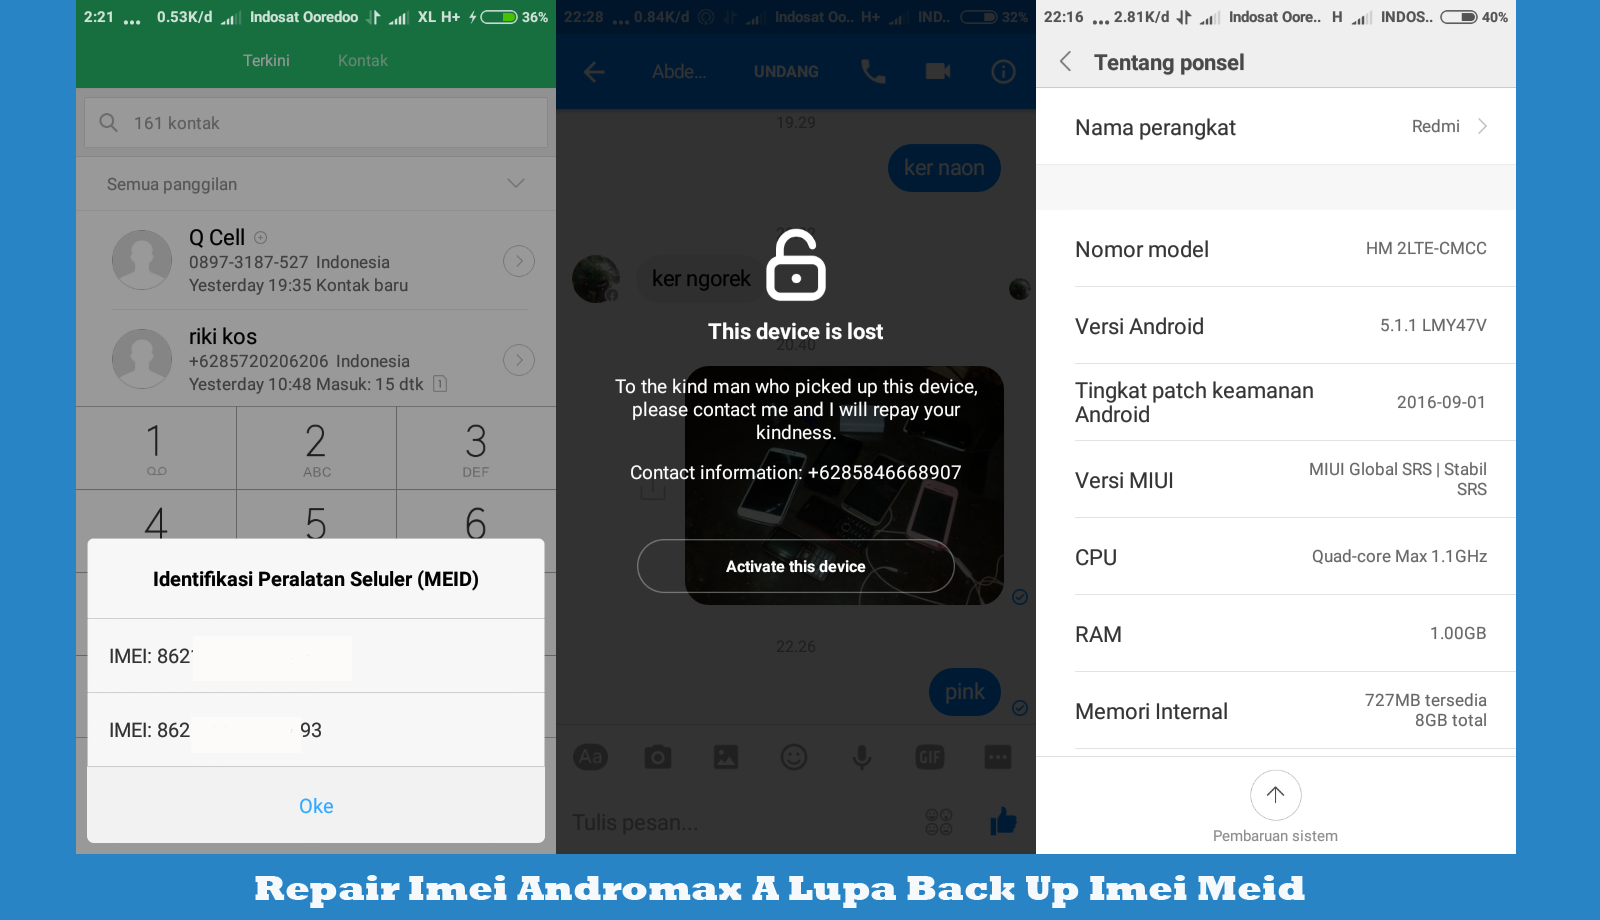 Cara Fix Imei Andromax A Yang Lupa di Back Up Work 100%